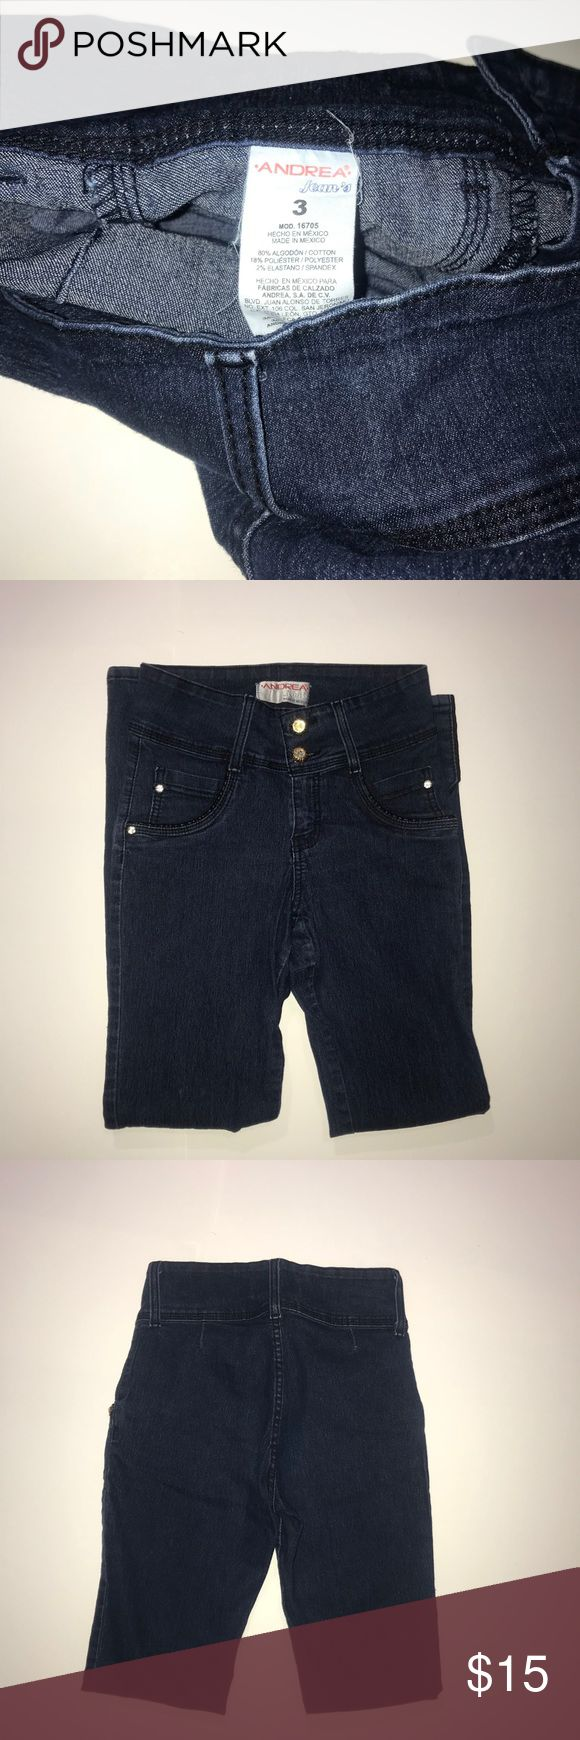 Andrea size 3 jeans dark blue Made in Mexico Worn only 3 times  Skinny jeans andrea Jeans Skinny